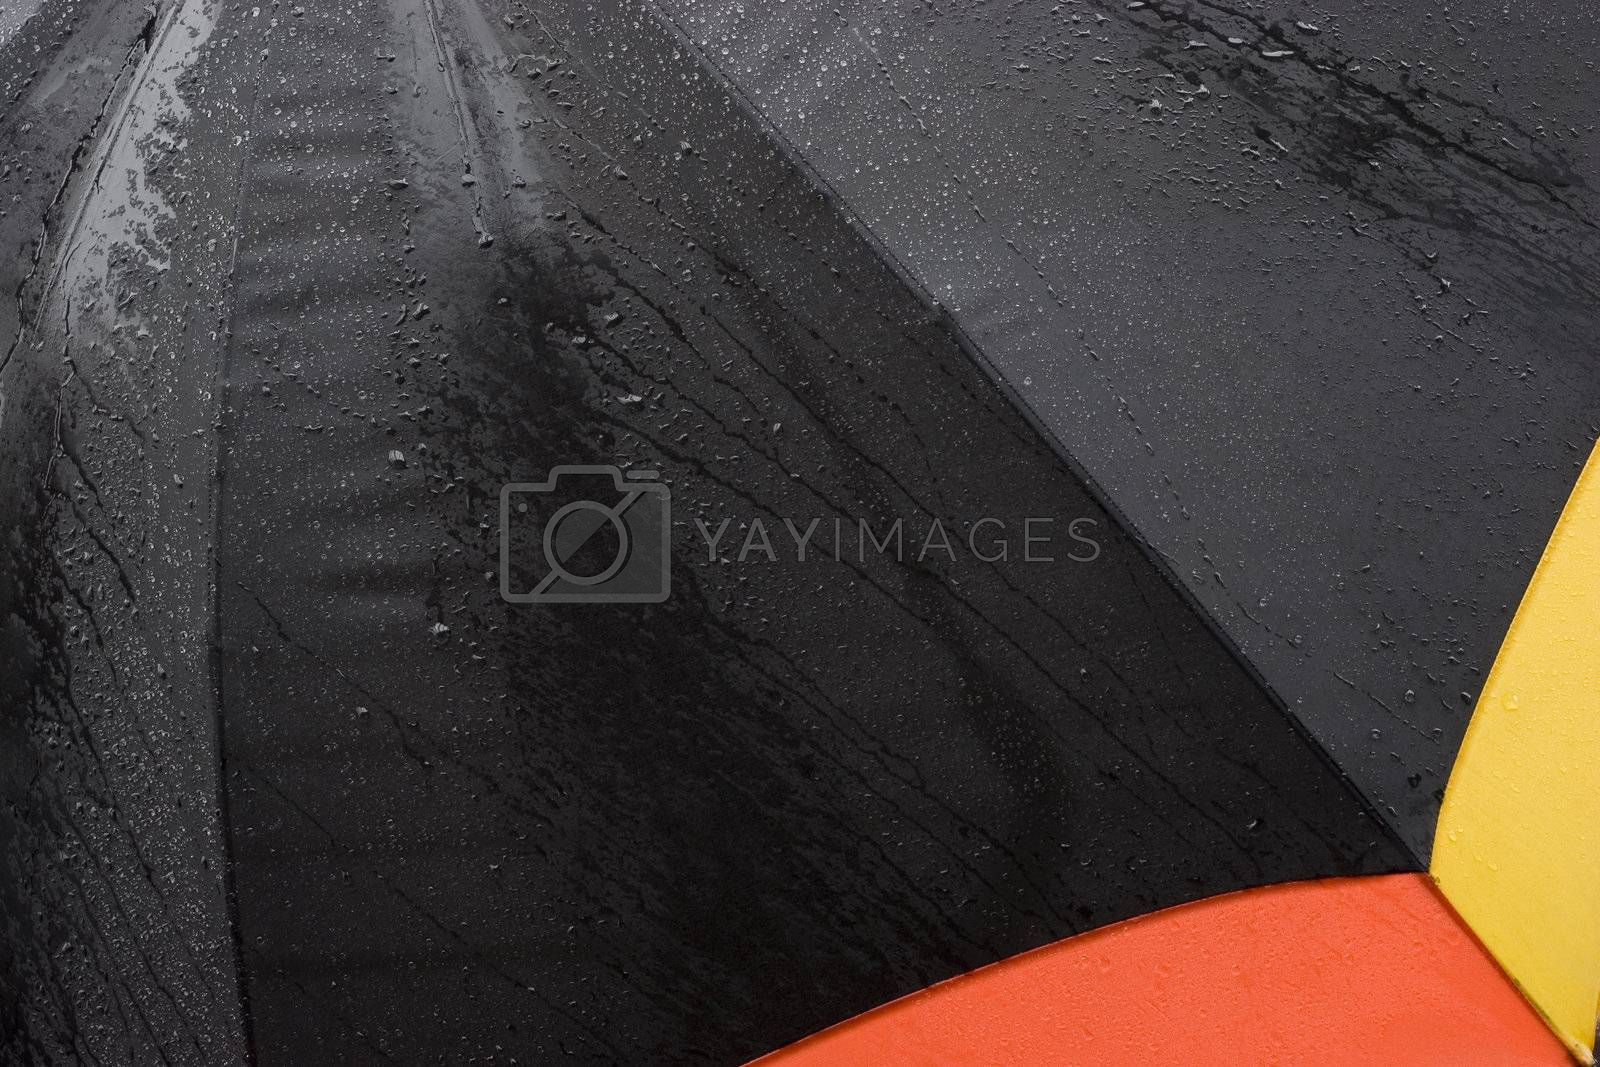 Detail of an umbrella in the rain